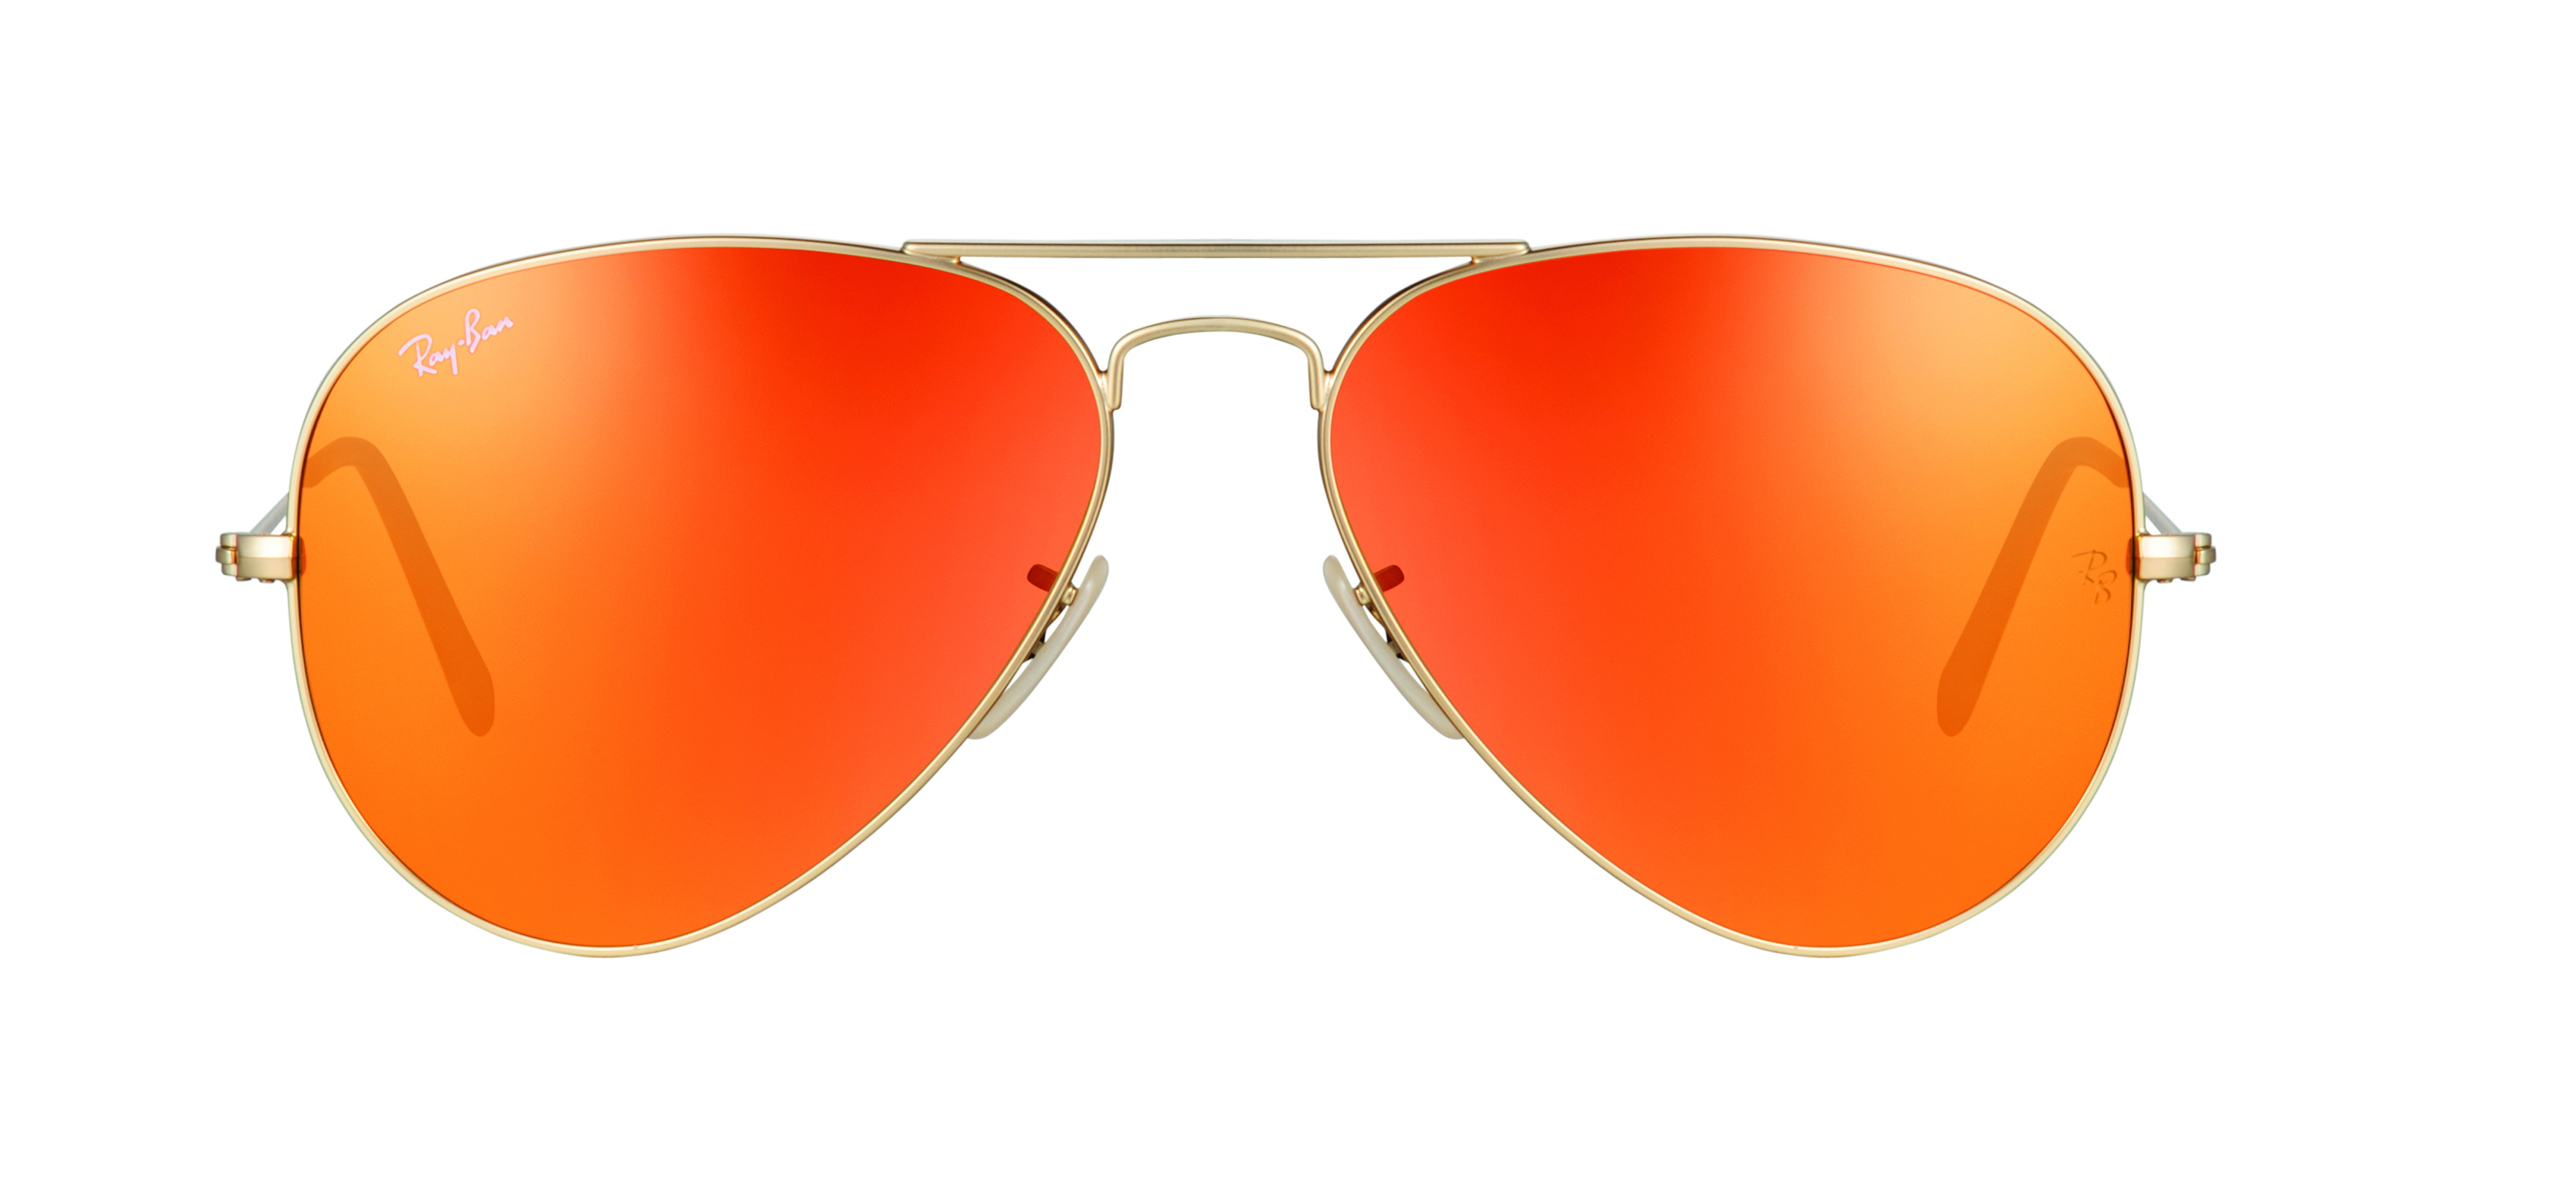 raybans glasses as5j  ray ban mirrored orange frames